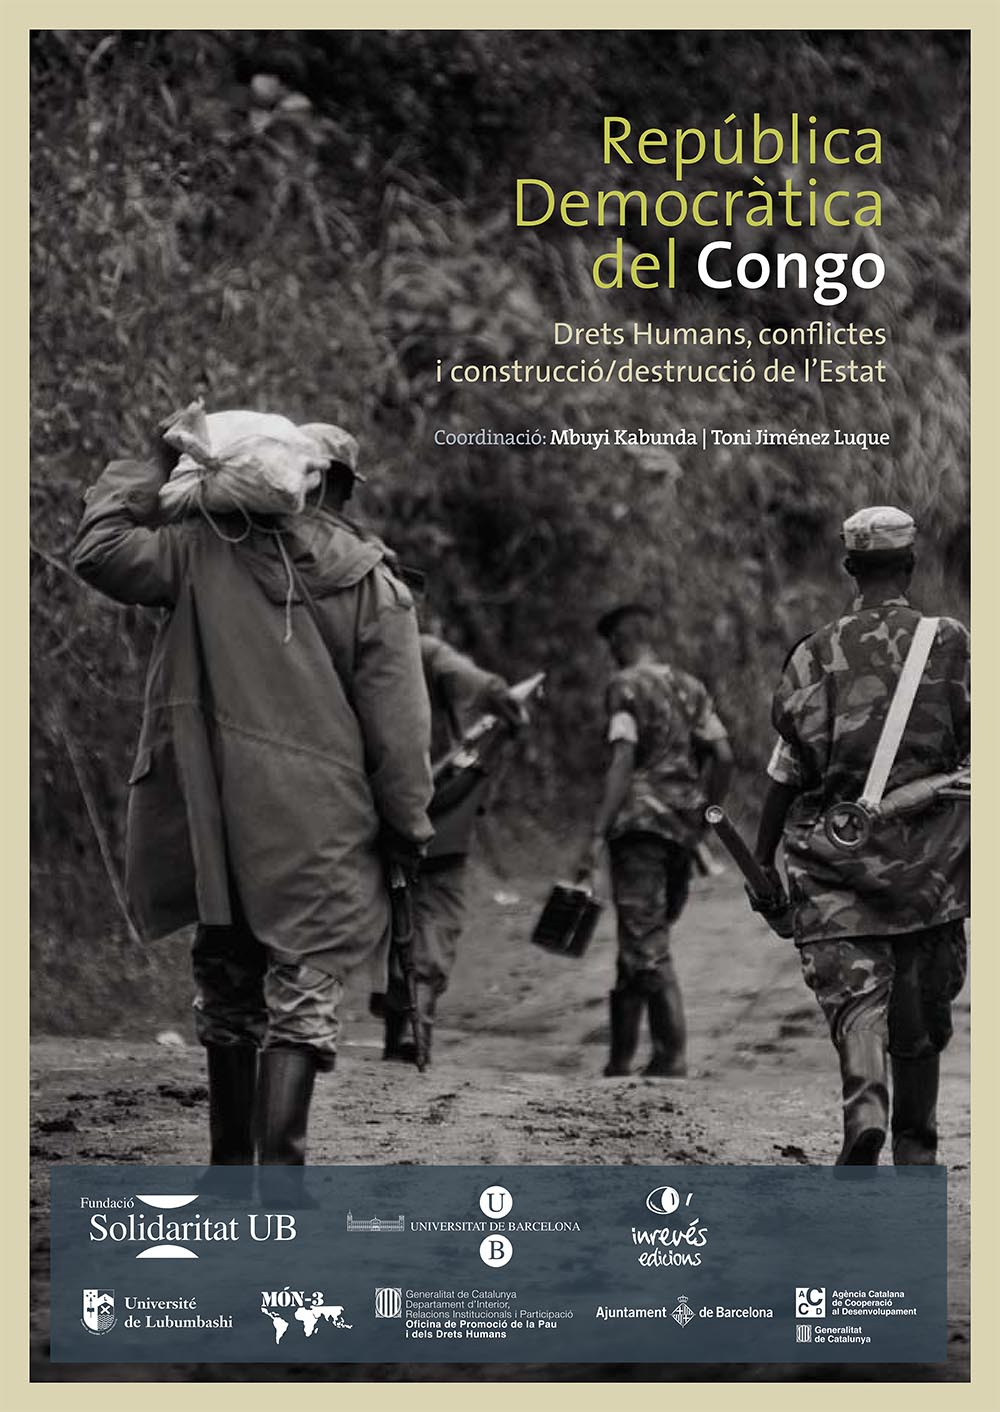 Drets_Humans_a_la_Republica_Democratica_del_Congo